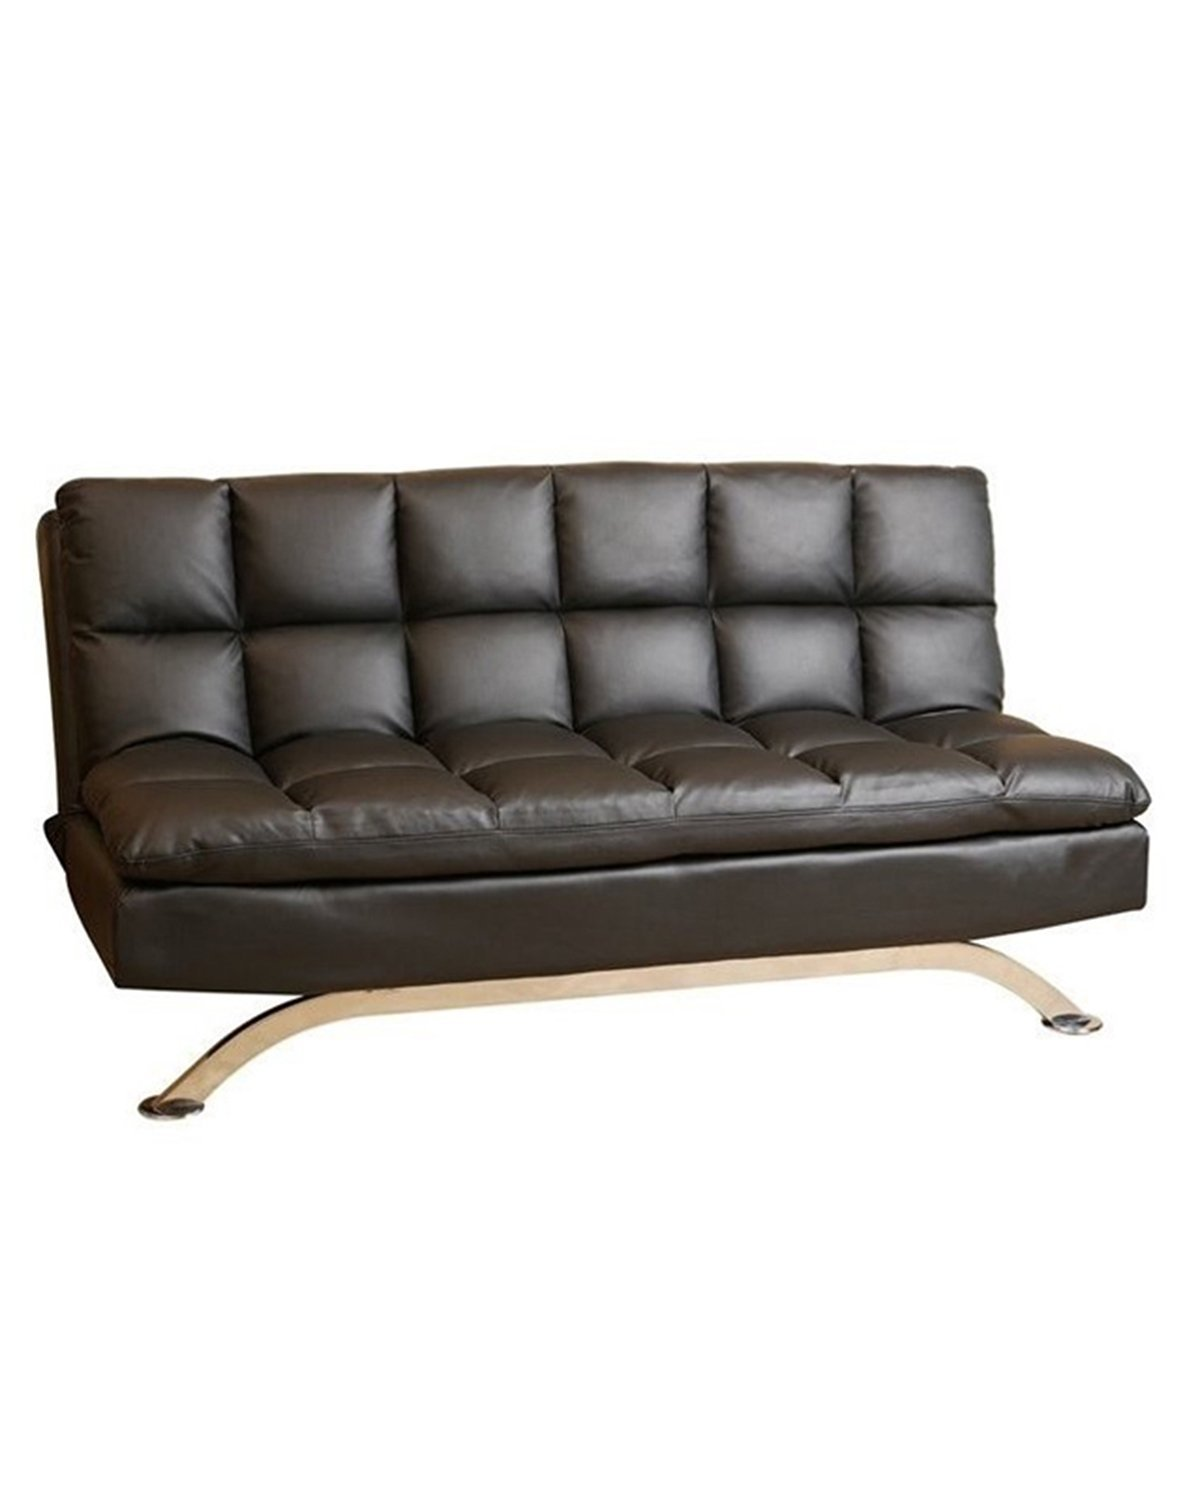 abbyson living westbury leather sectional sofa black blue dylan lounger home furniture design